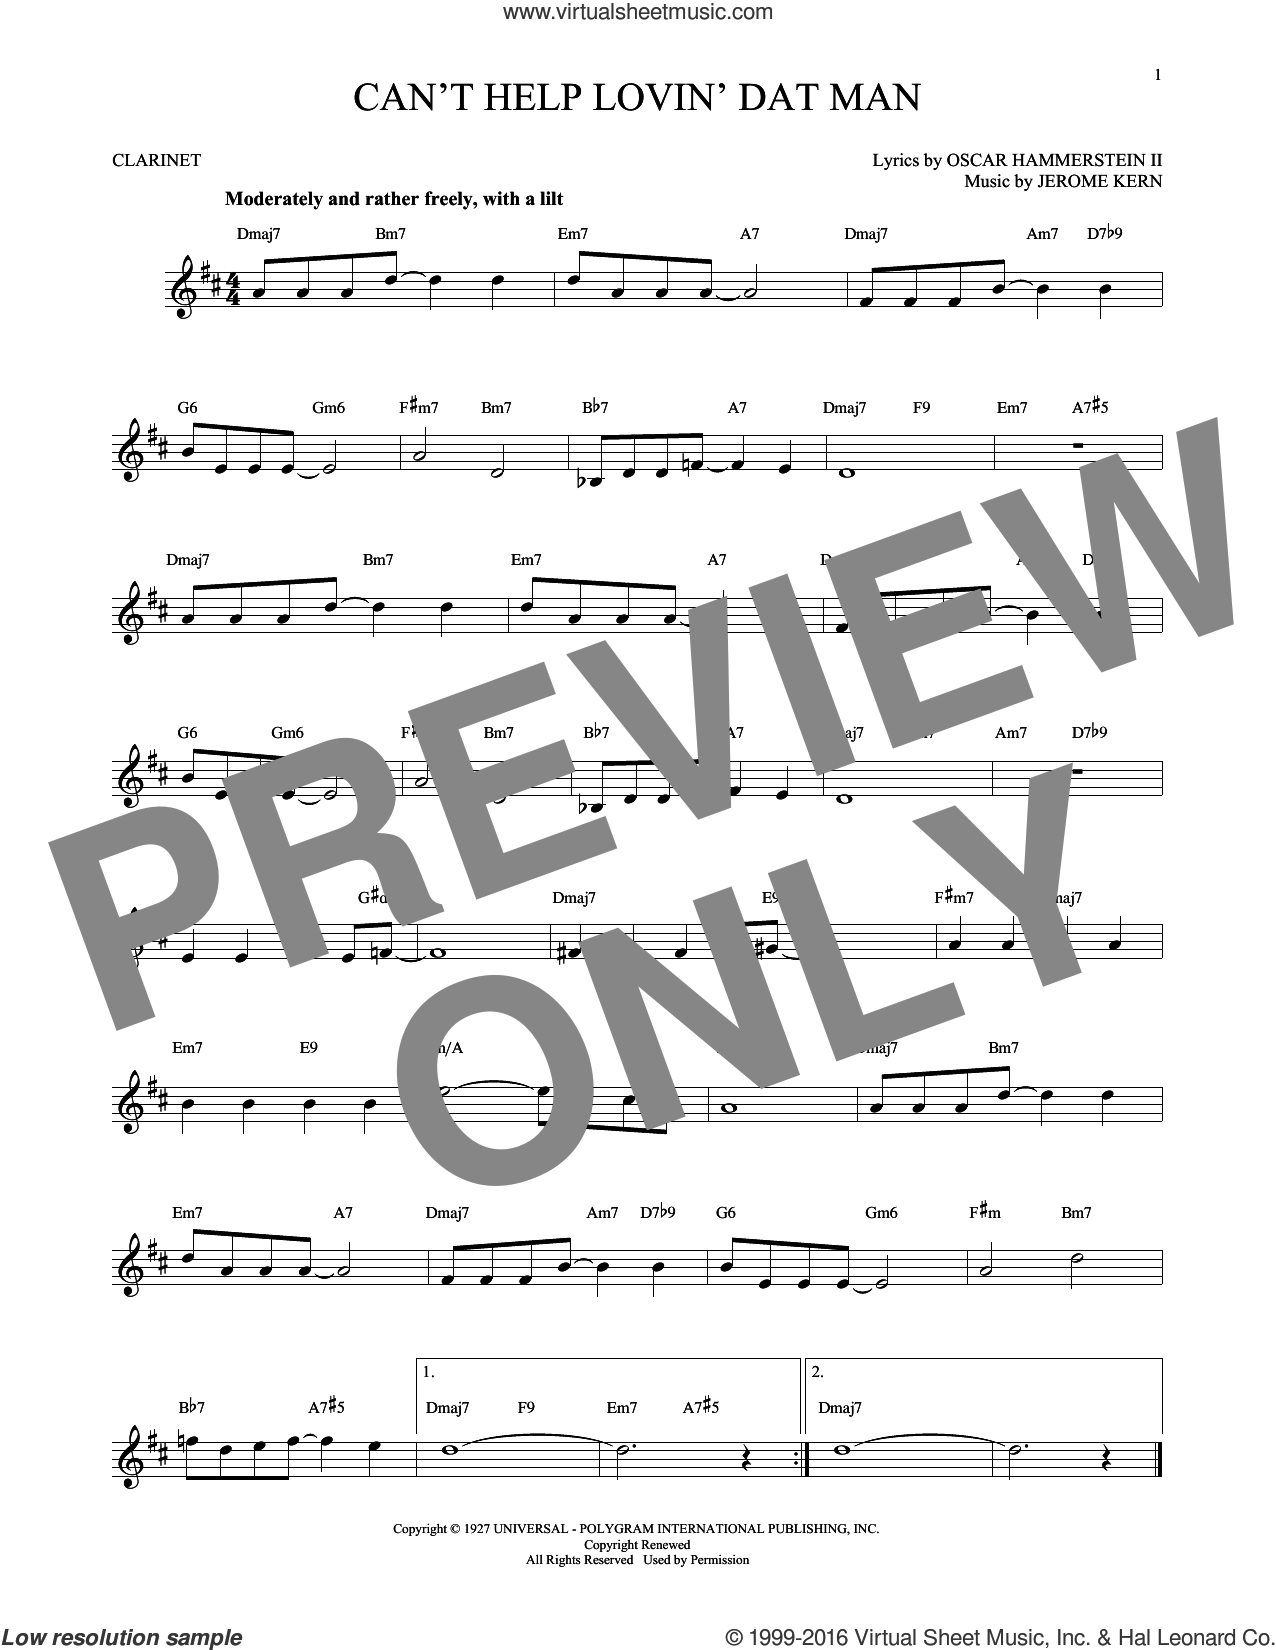 Can't Help Lovin' Dat Man sheet music for clarinet solo by Oscar II Hammerstein, Helen Morgan and Jerome Kern. Score Image Preview.